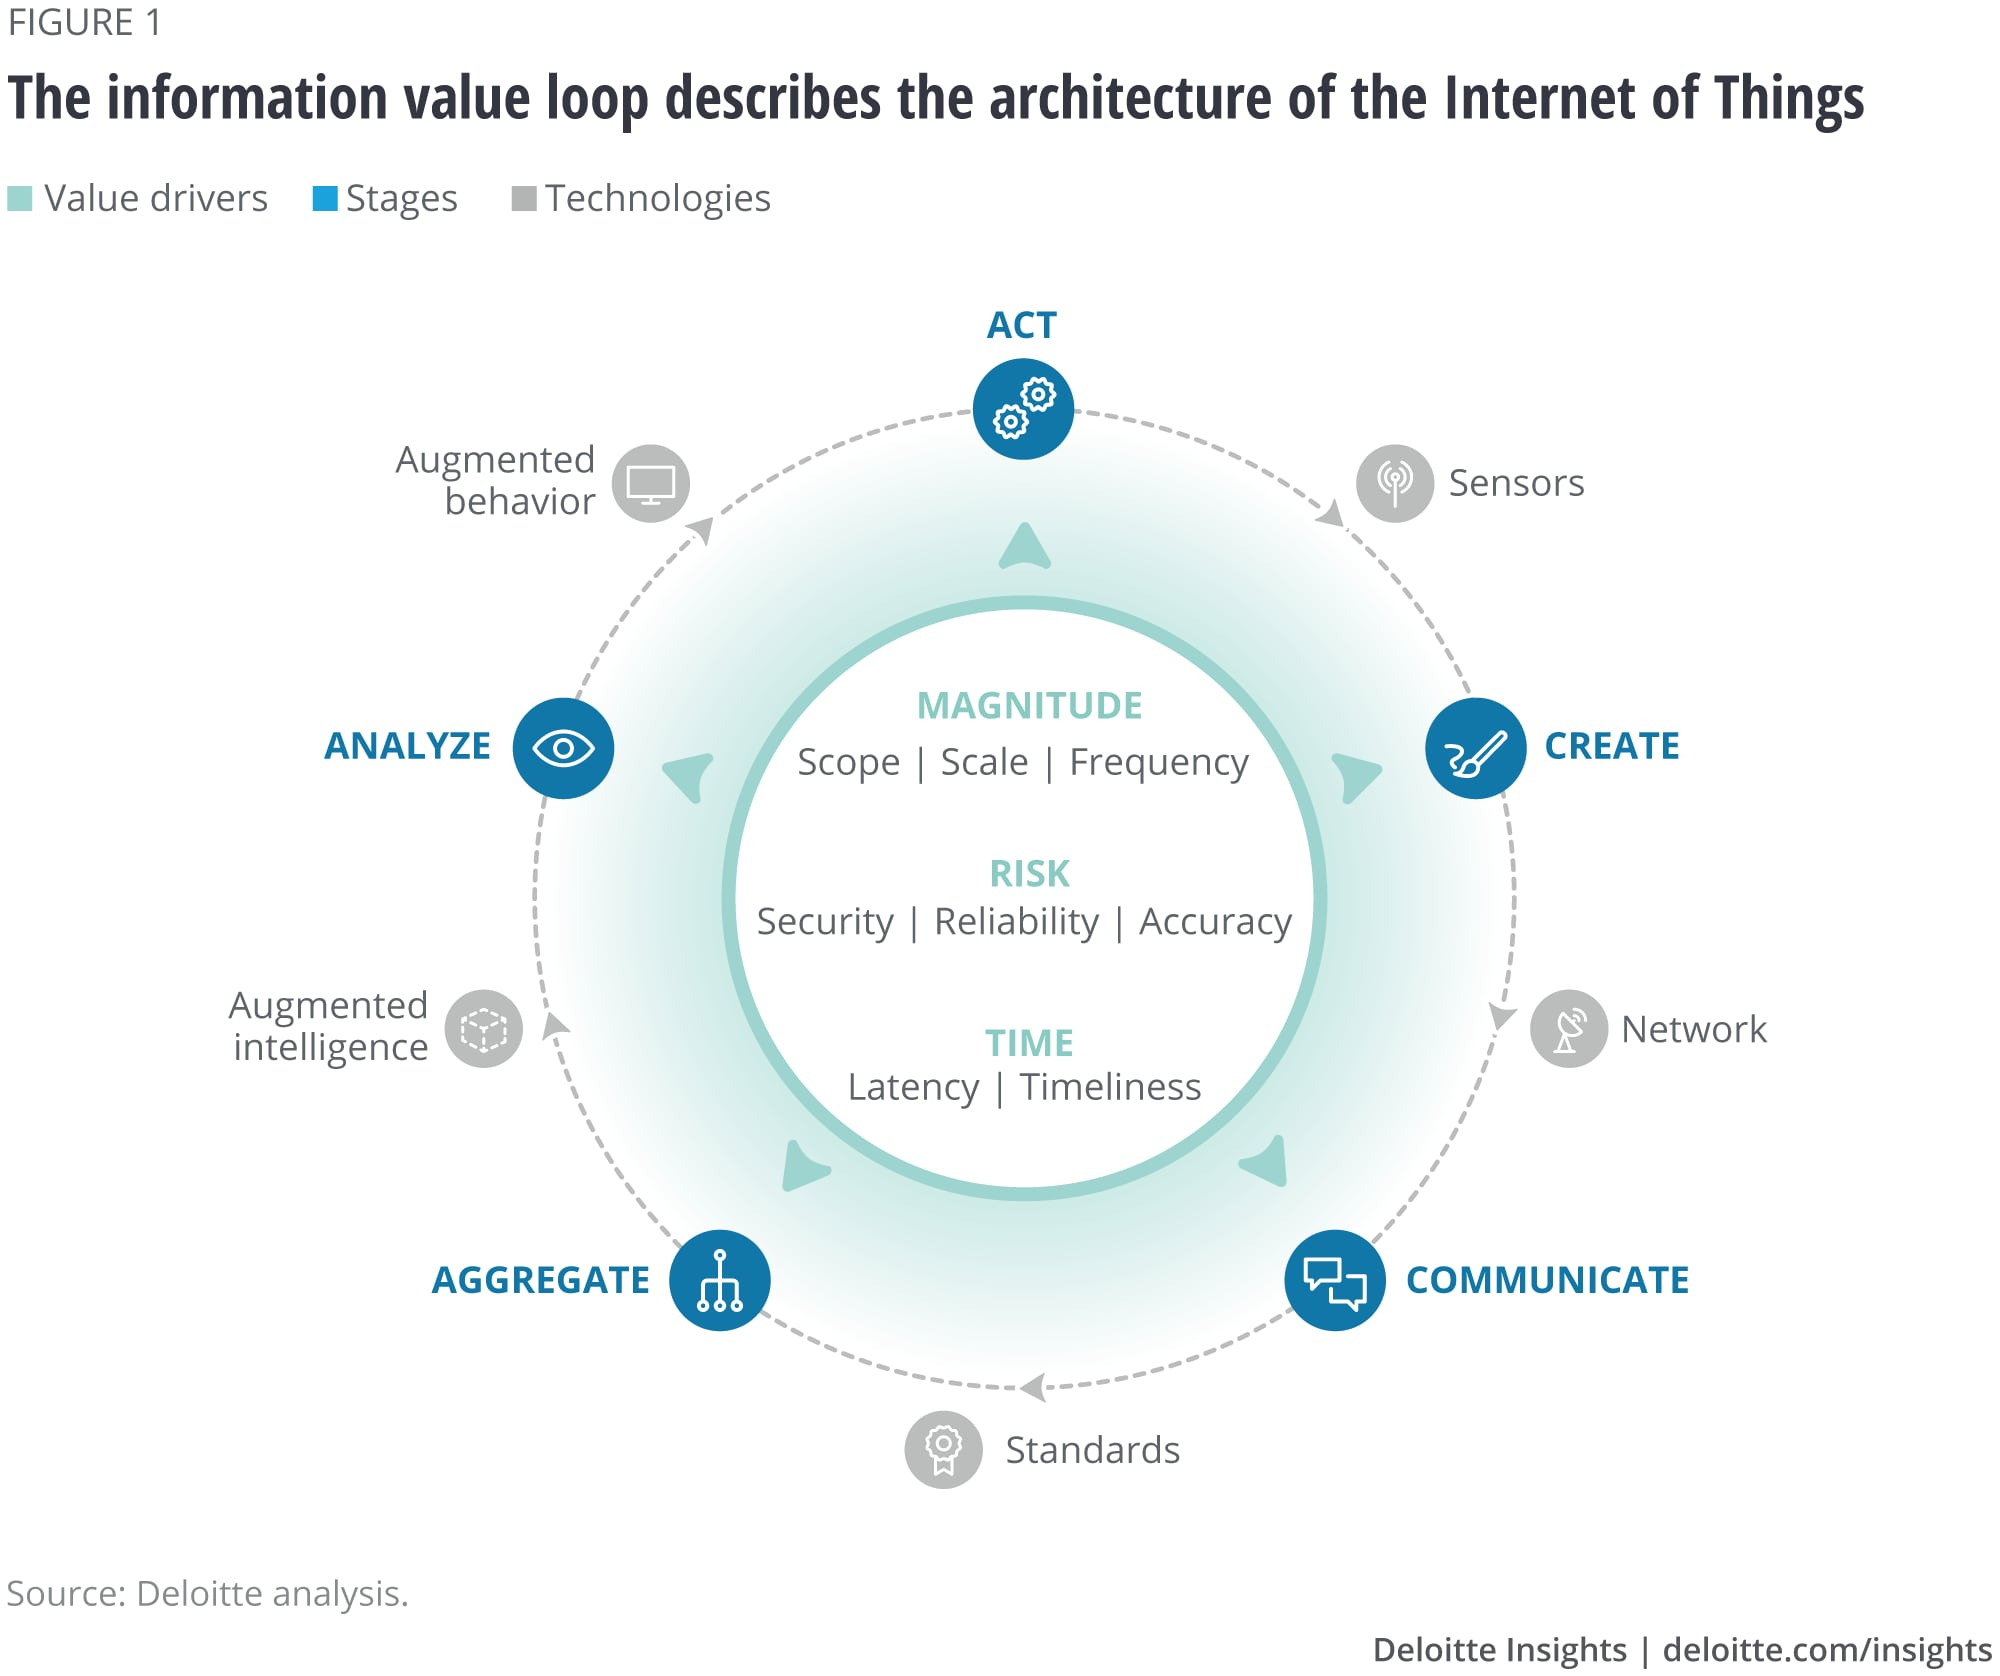 The information value loop describes the architecture of the Internet of Things